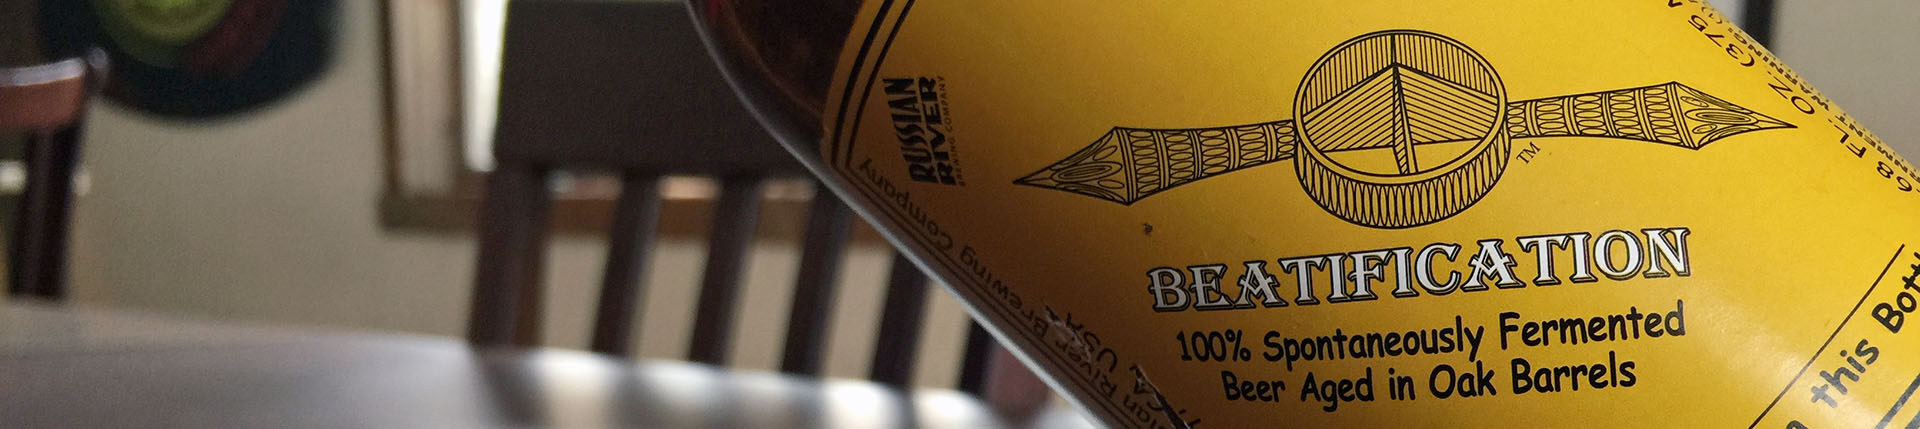 Russian River Beatification Header